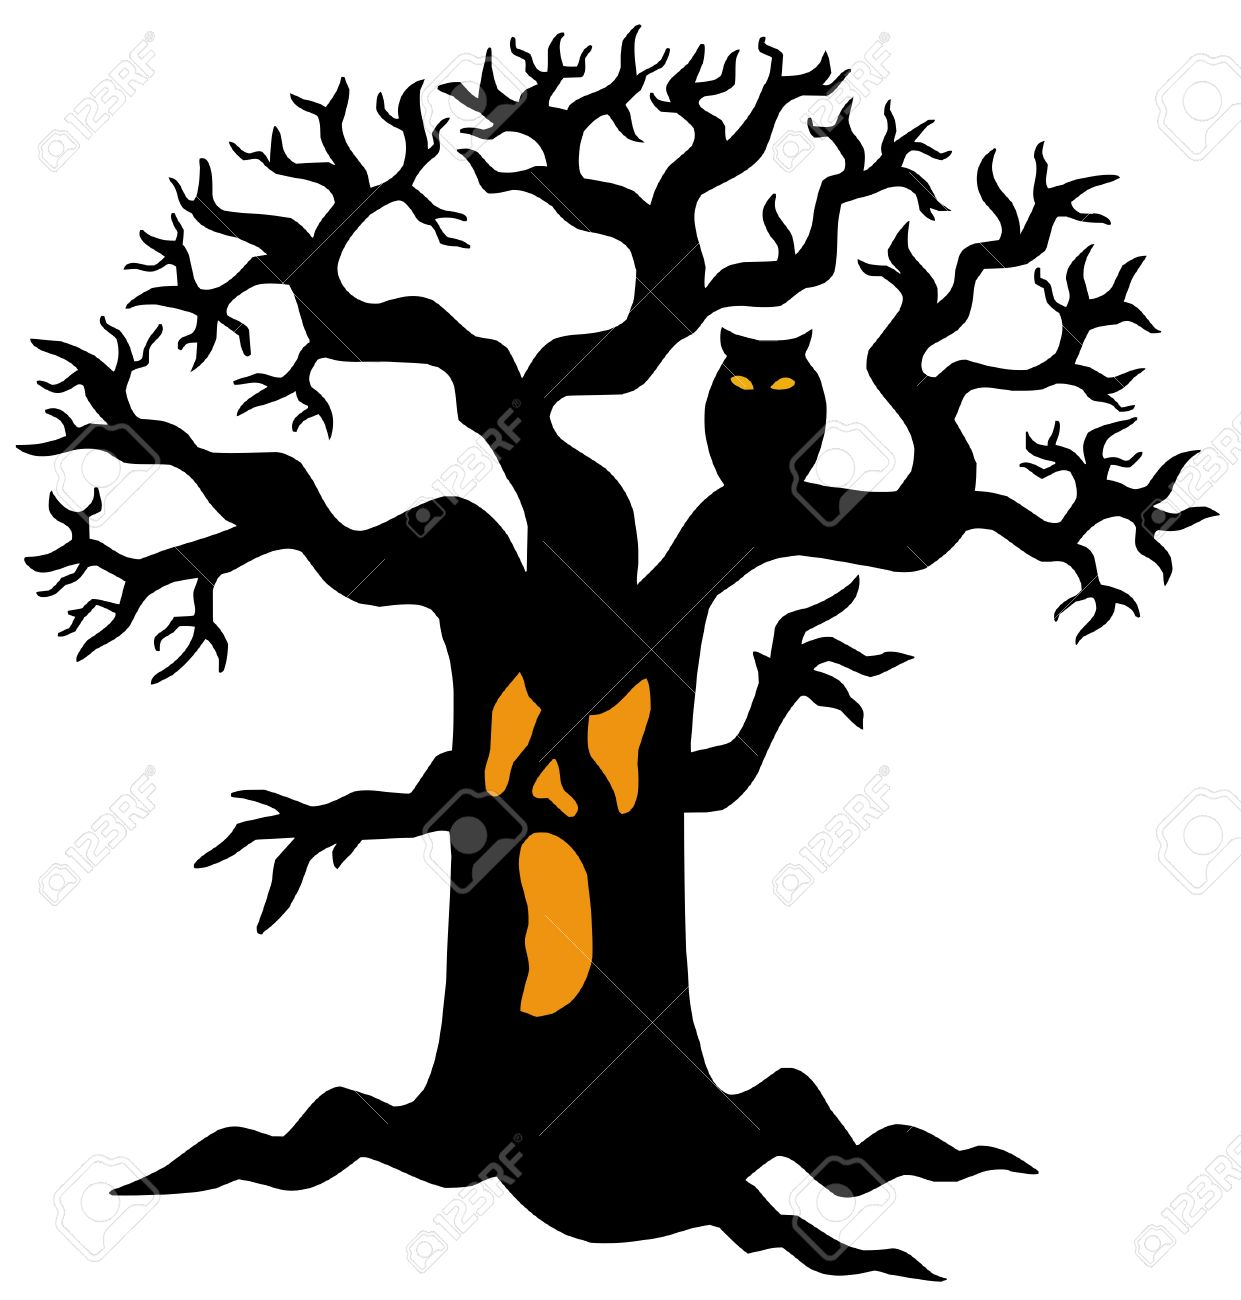 spooky tree silhouette vector illustration royalty free cliparts rh 123rf com Spooky Leaves Clip Art Scary Forest Clip Art